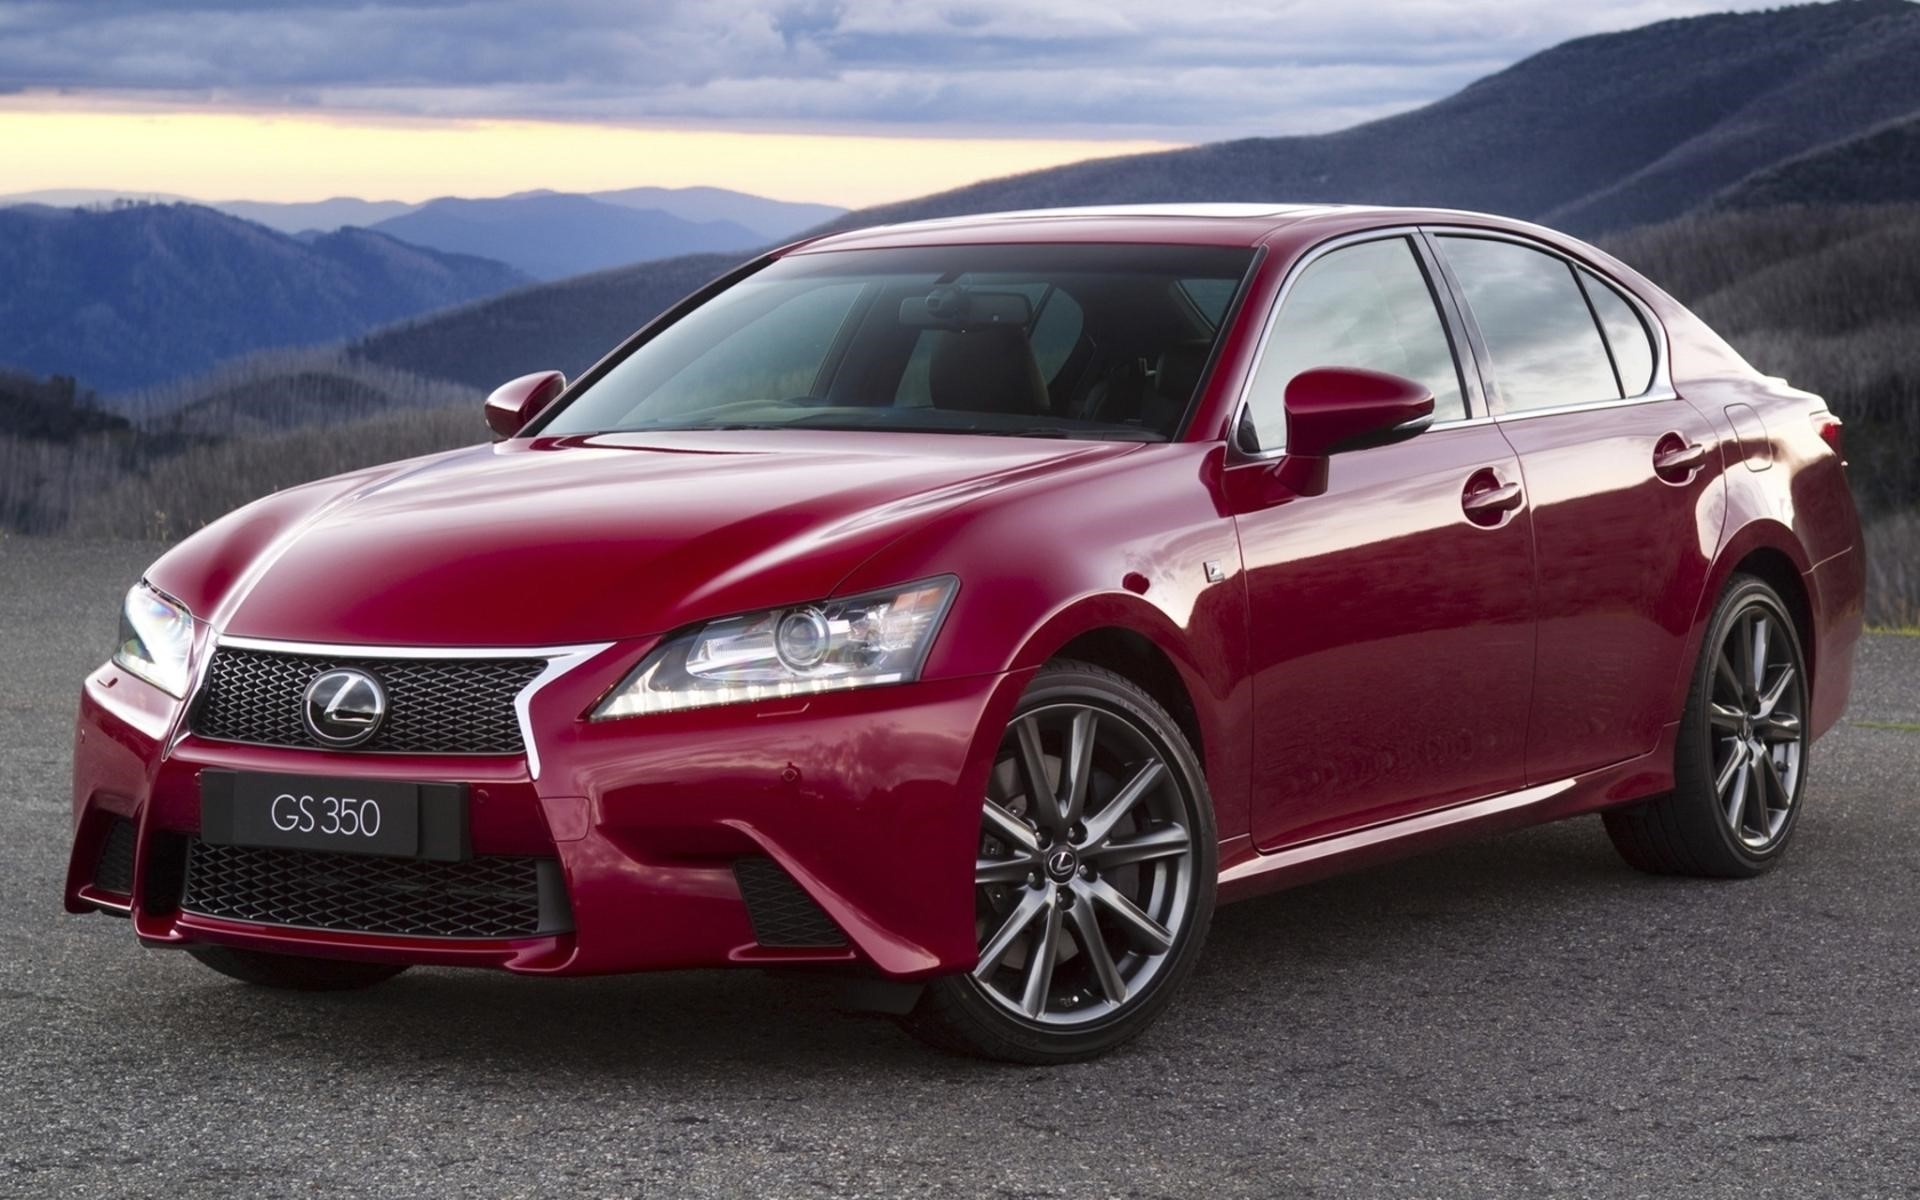 58 2013 Category Other Cars Downloads 385 Tags Lexus Cars Wide Views 694 499 Lexus Car Hd Wallpapers